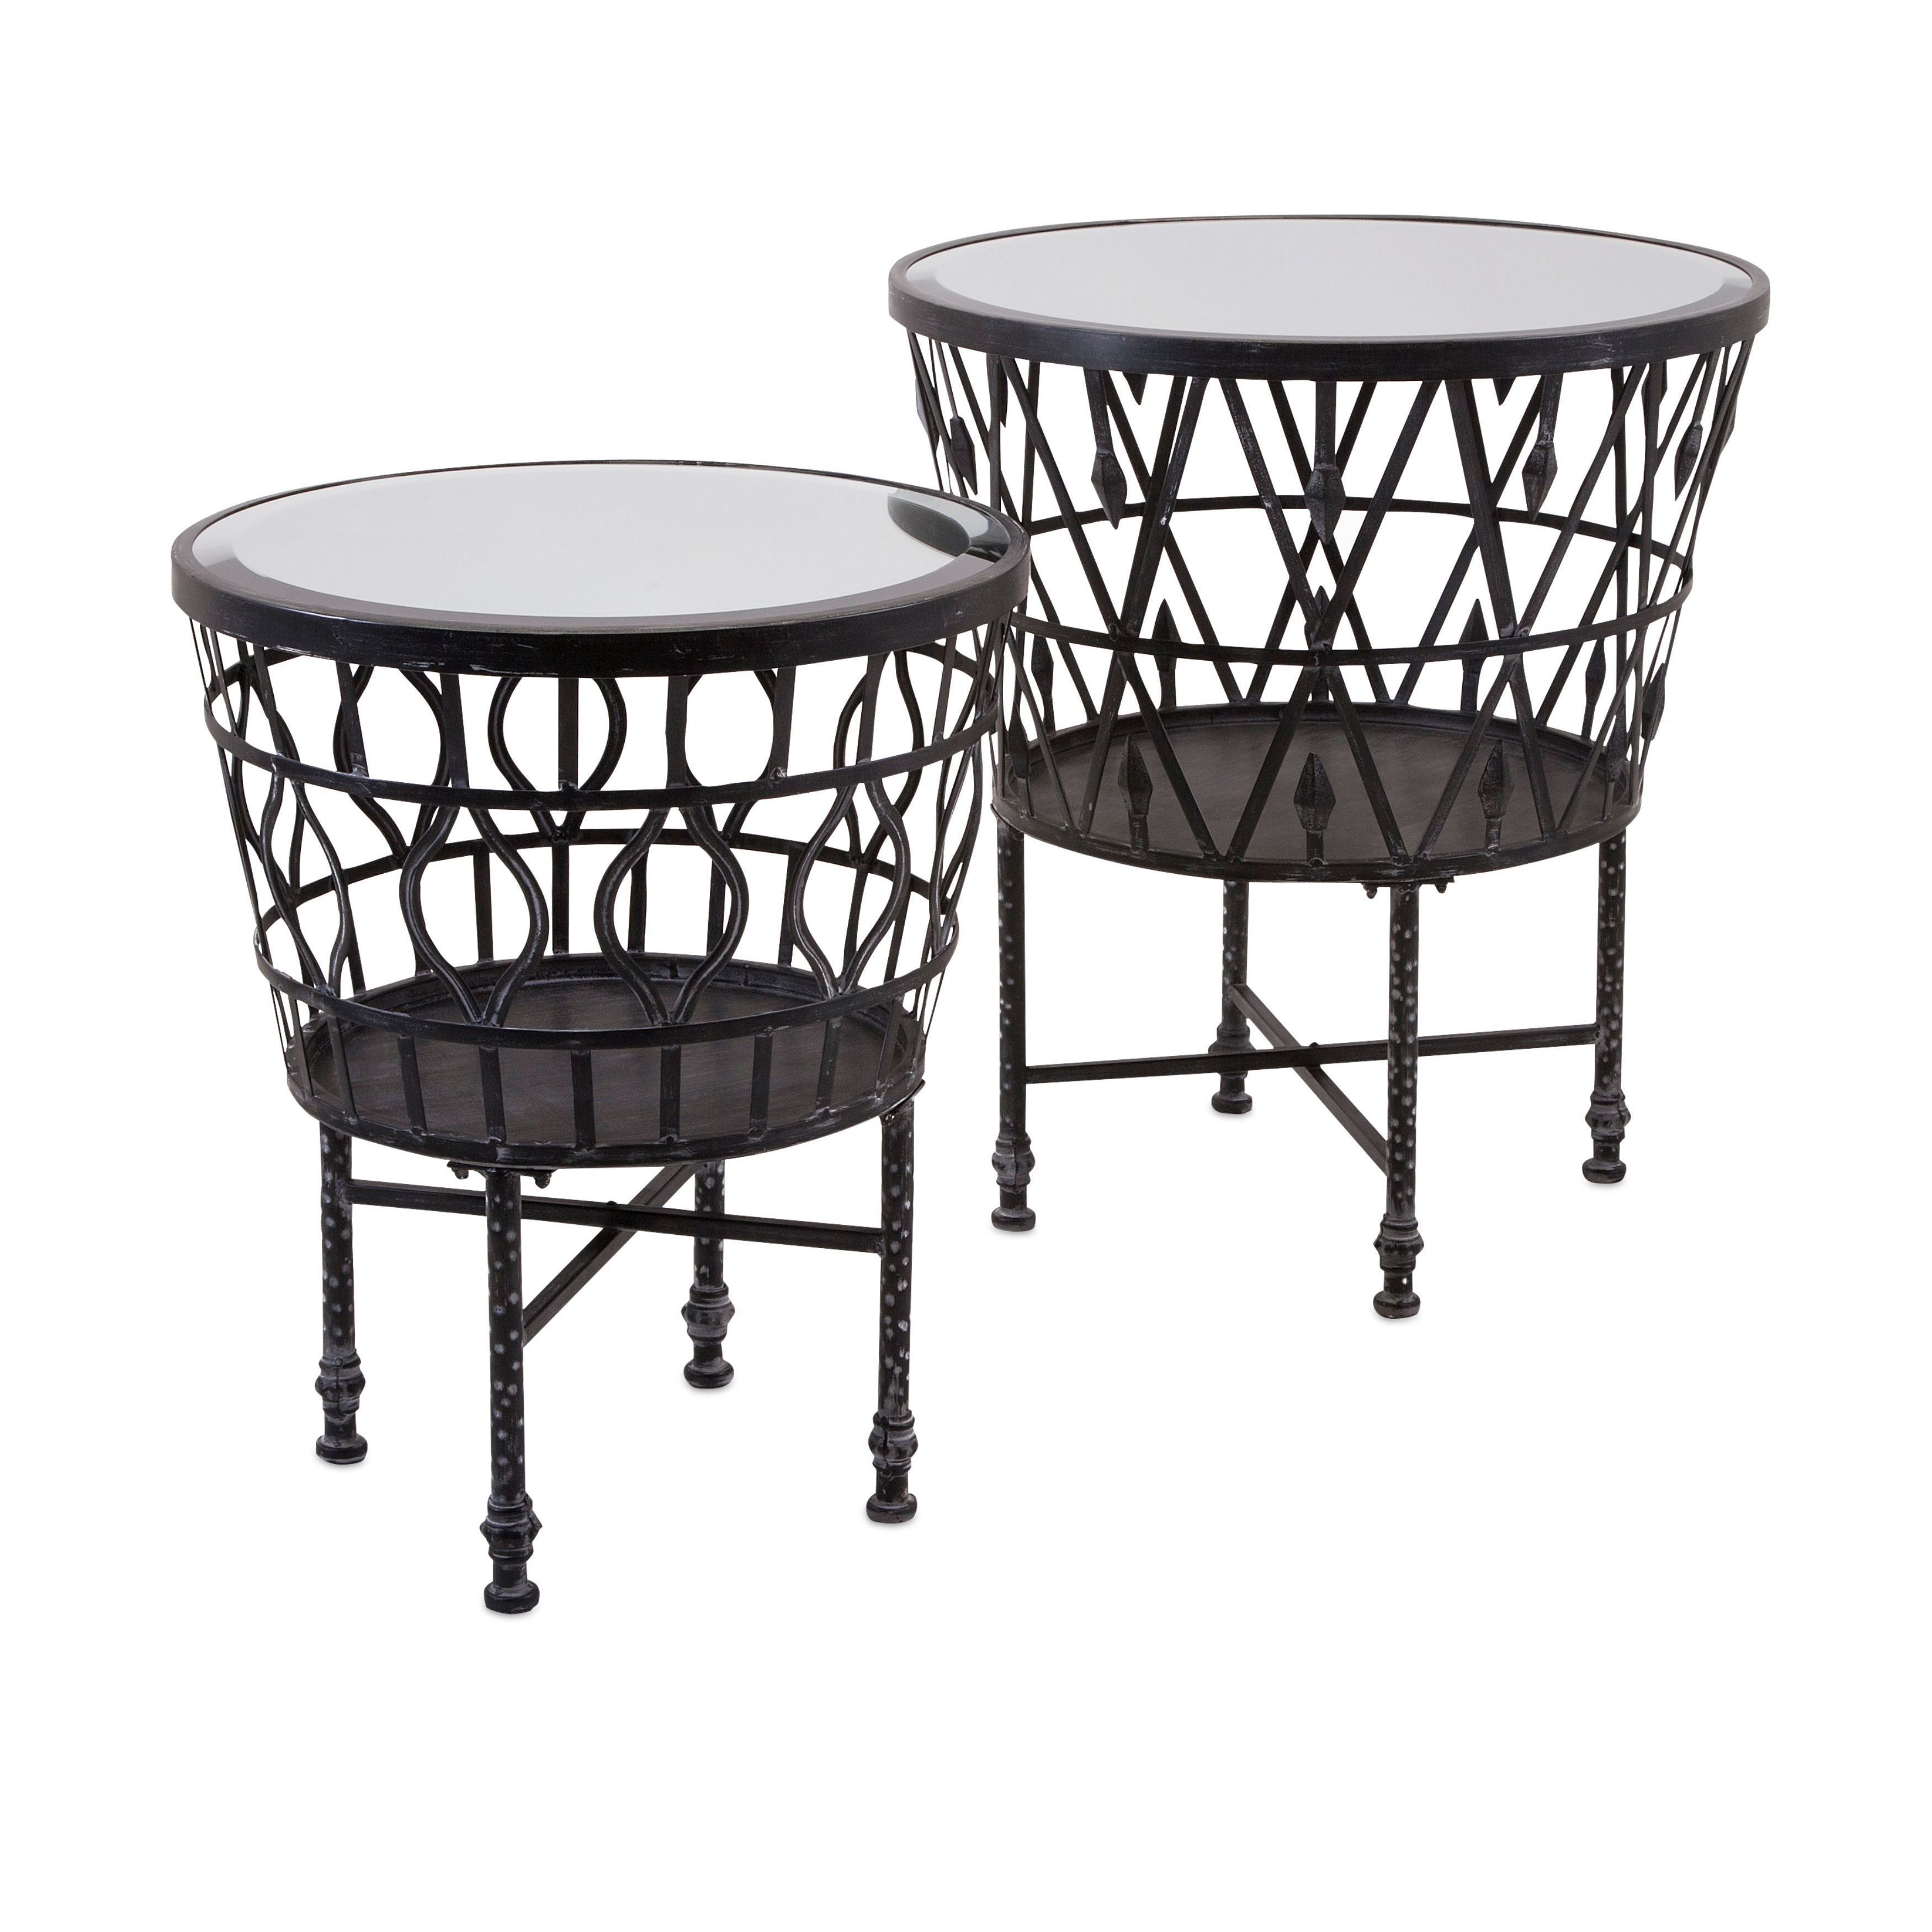 zaria drum mirror accent tables set occasional table black storage imax brown wrought iron and silver coffee small side with drawers cabinet furniture beach themed floor lamps